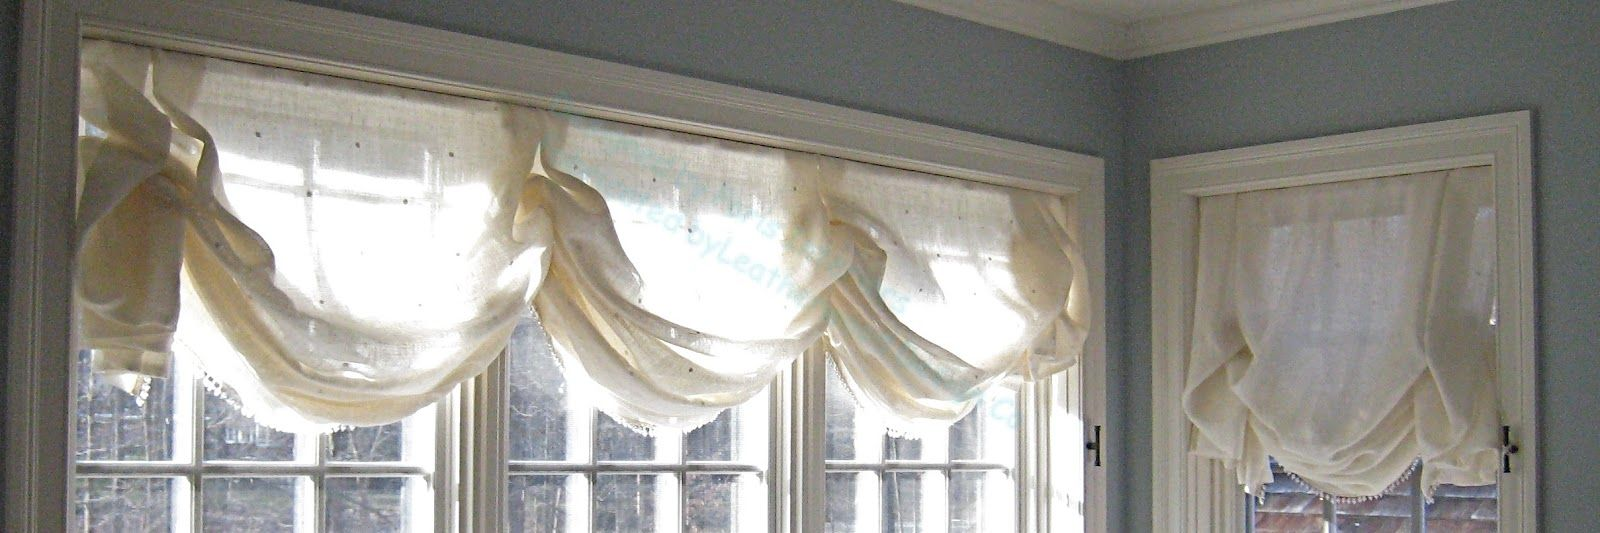 Relaxed Roman Shade On Triple Window For Nanas Room Relaxed Roman Shade New Homes Family Room